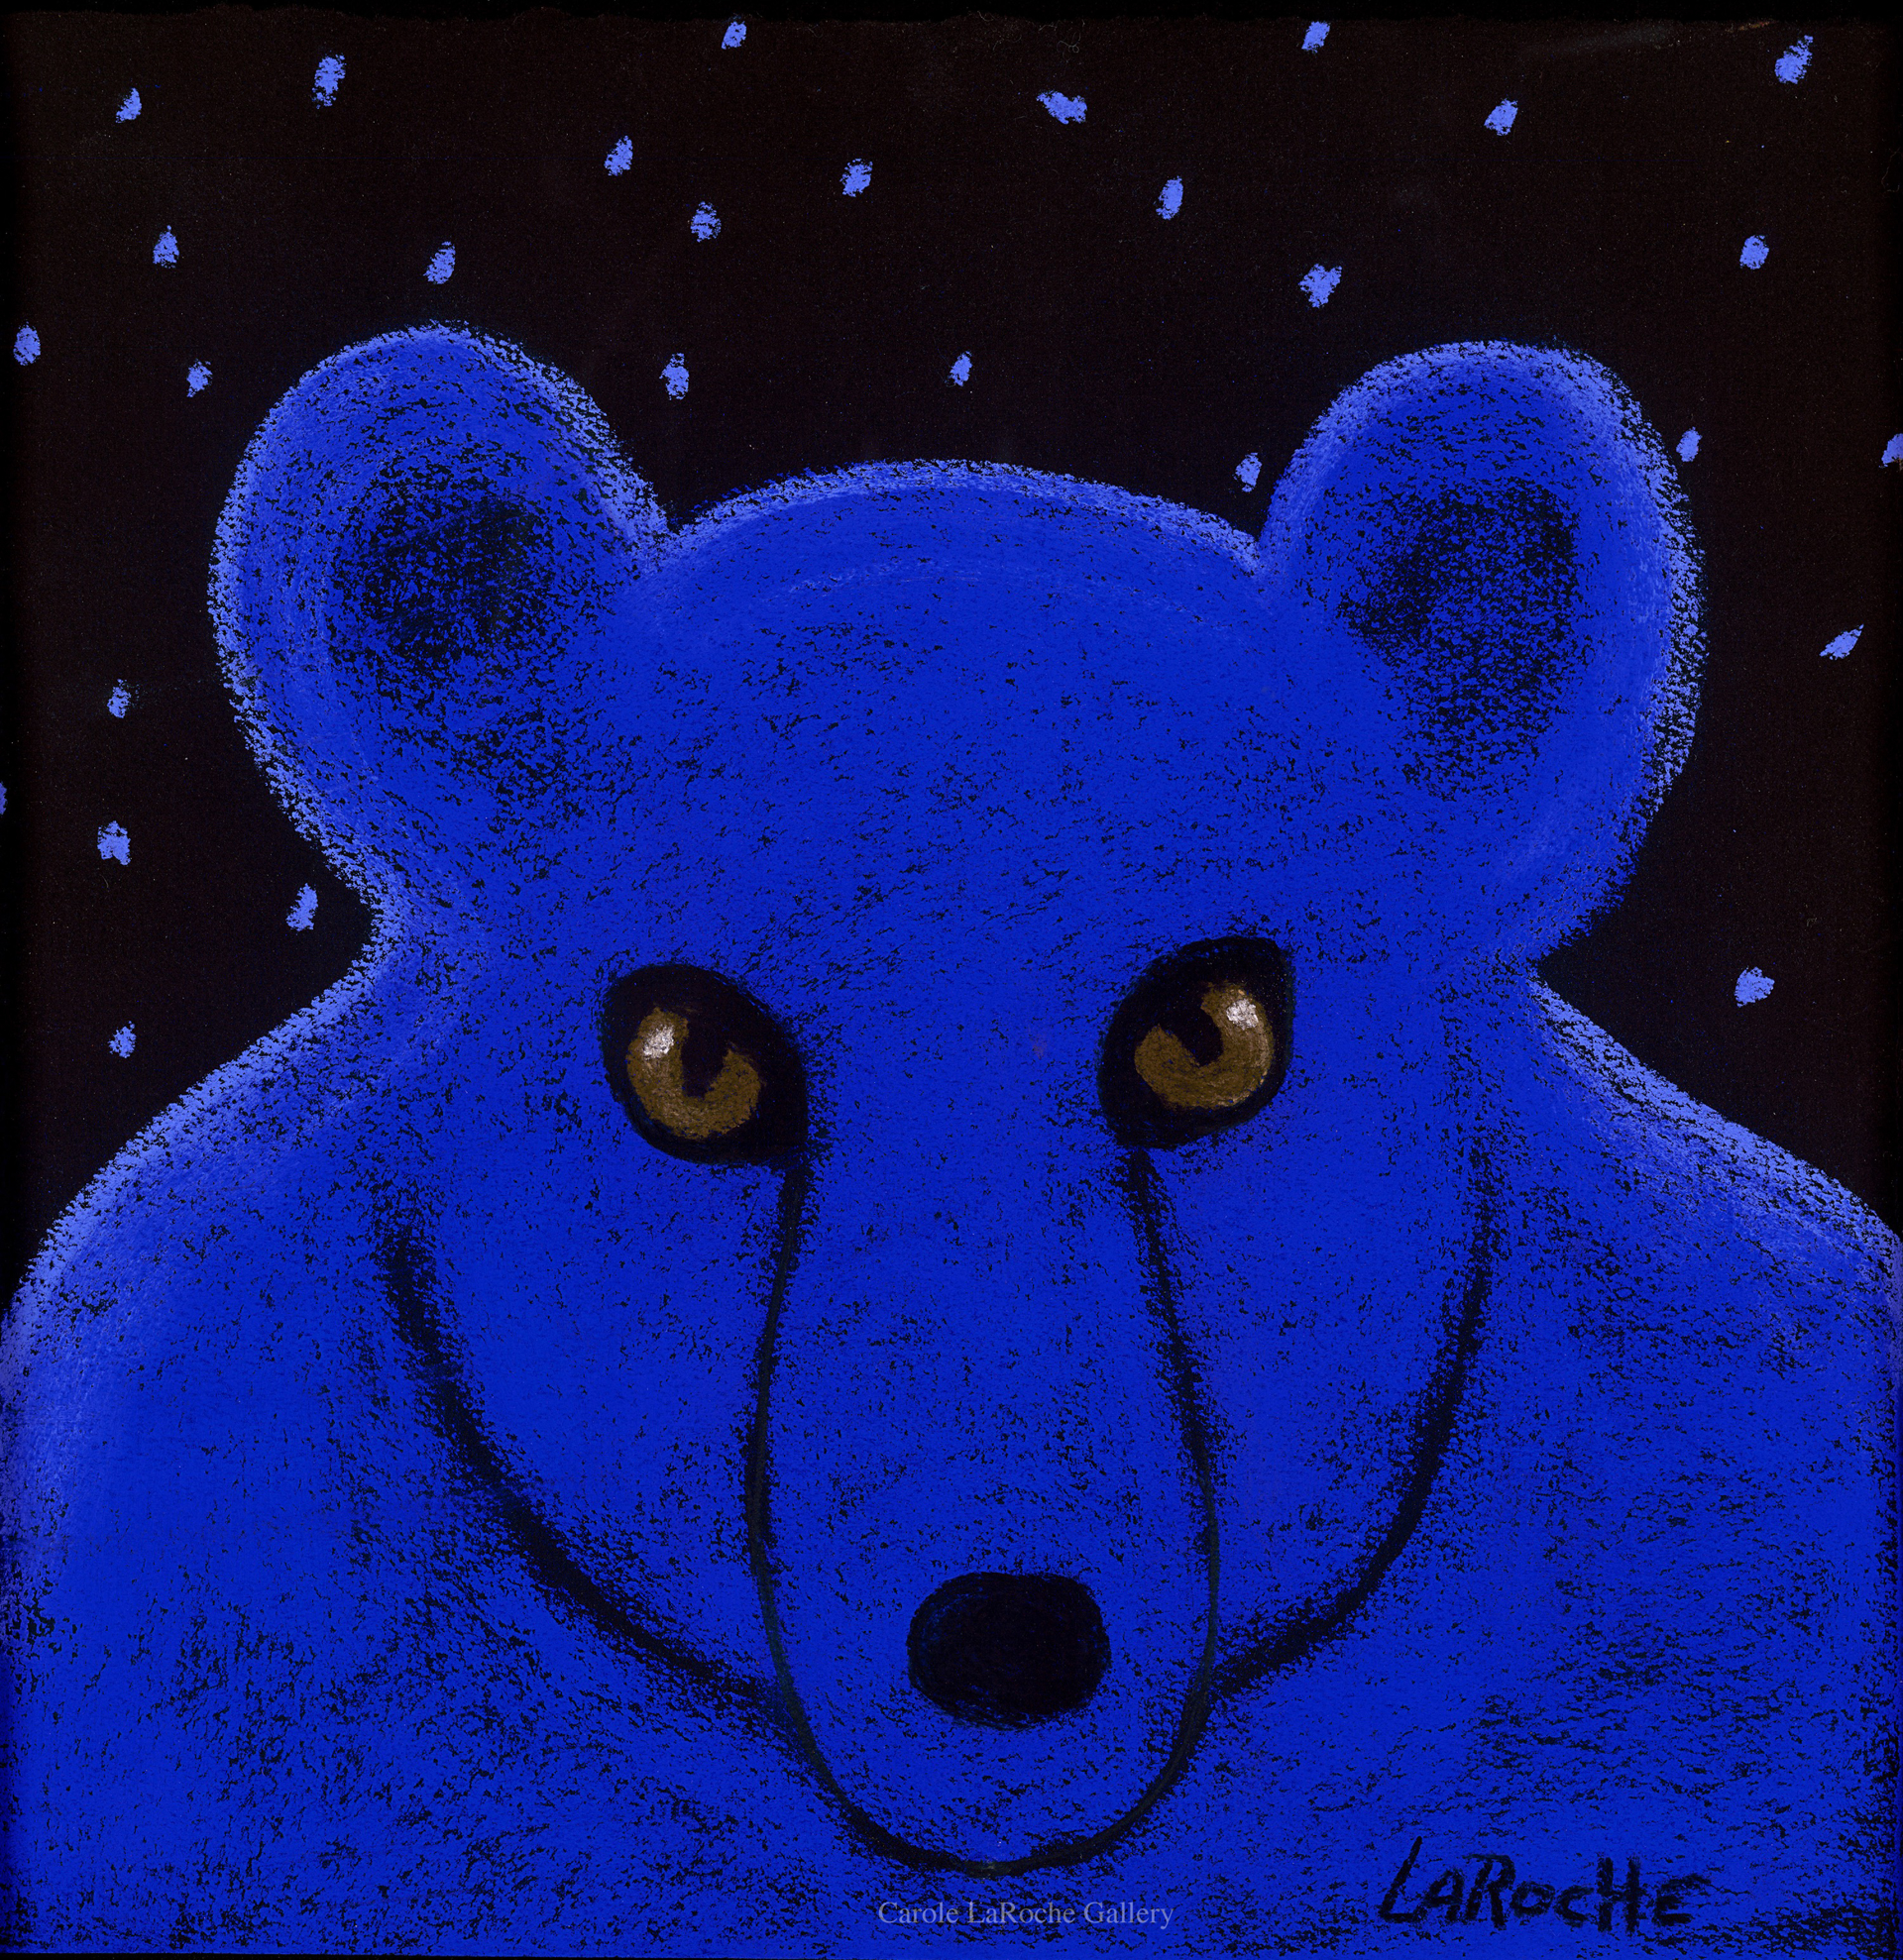 "BABY BLUE - limited edition giclee on canvas 20""x20"" or on paper w/frame size of 25""x25"" by Carole LaRoche"